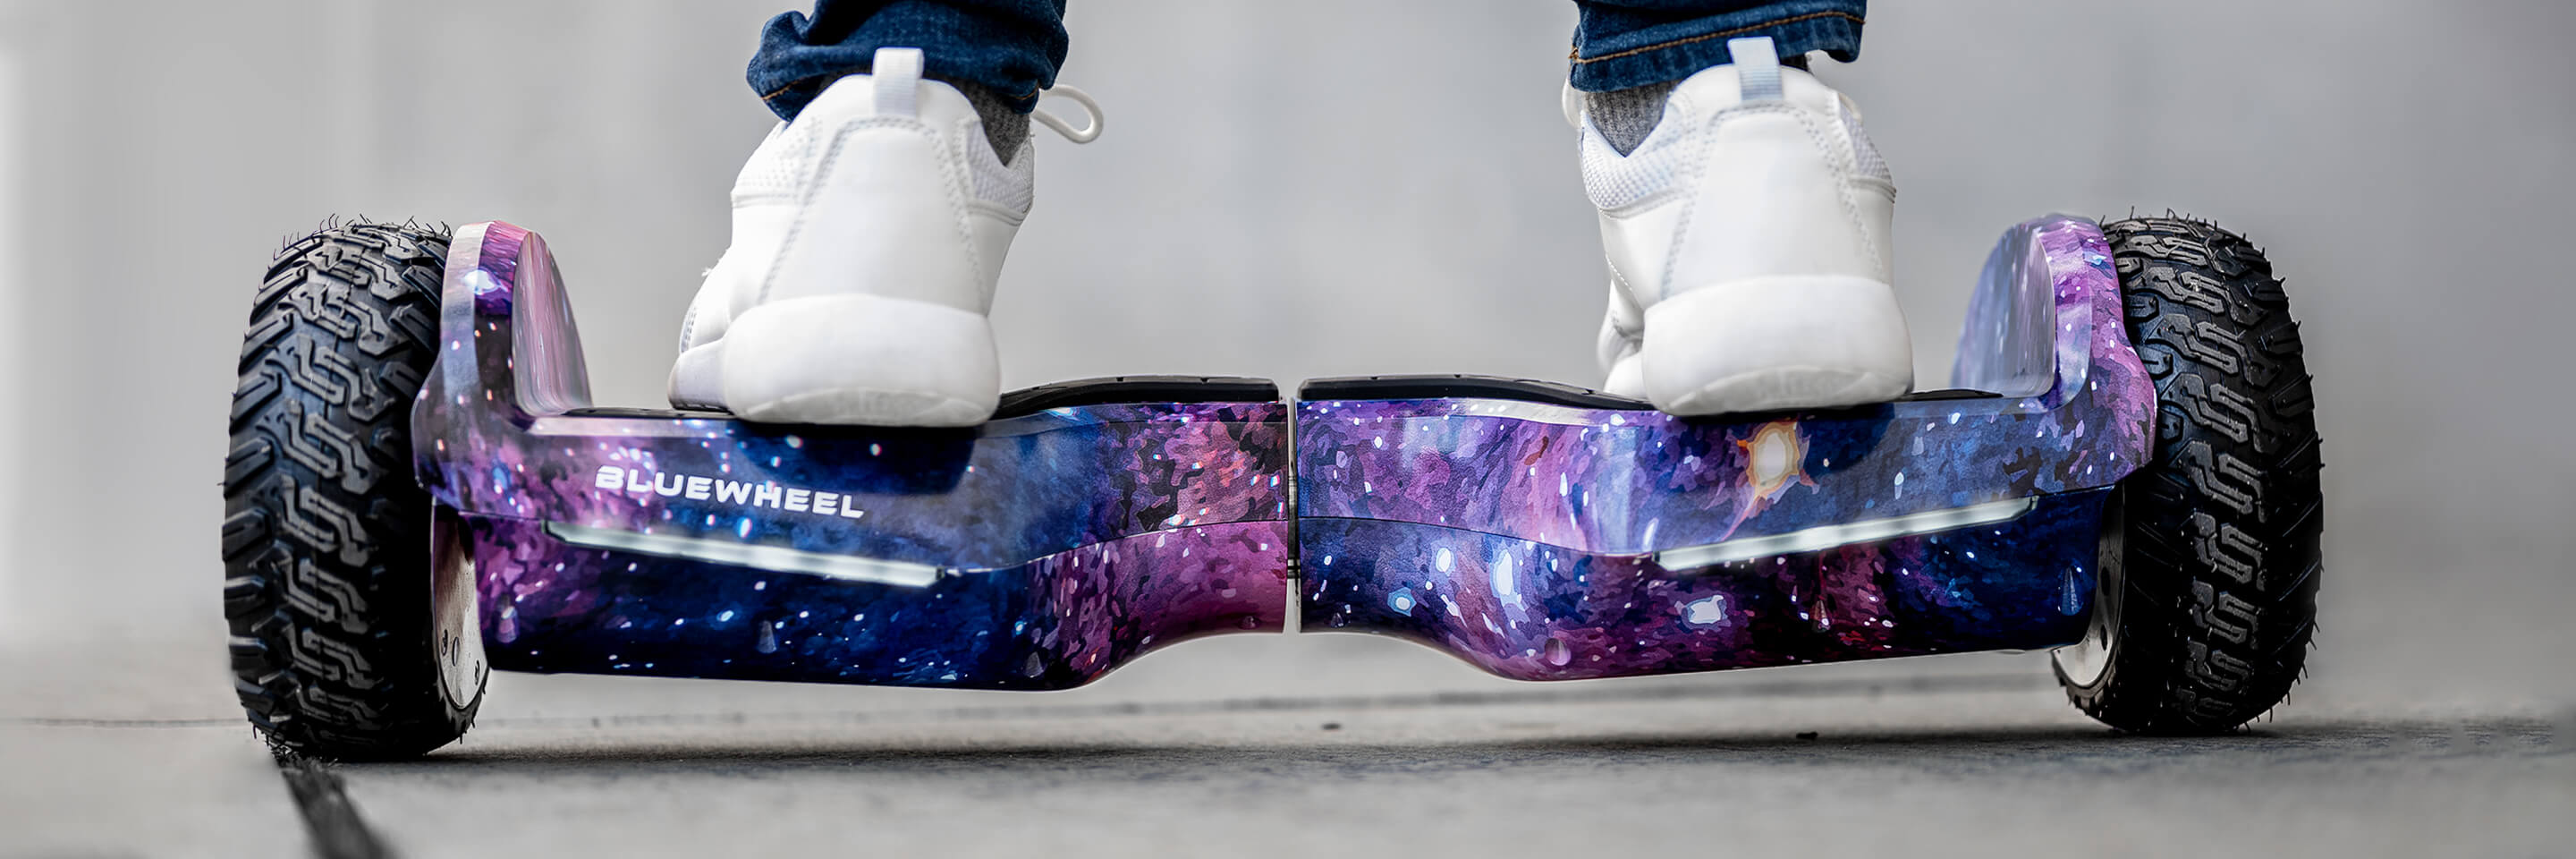 hoverboard-hx380-topbanner